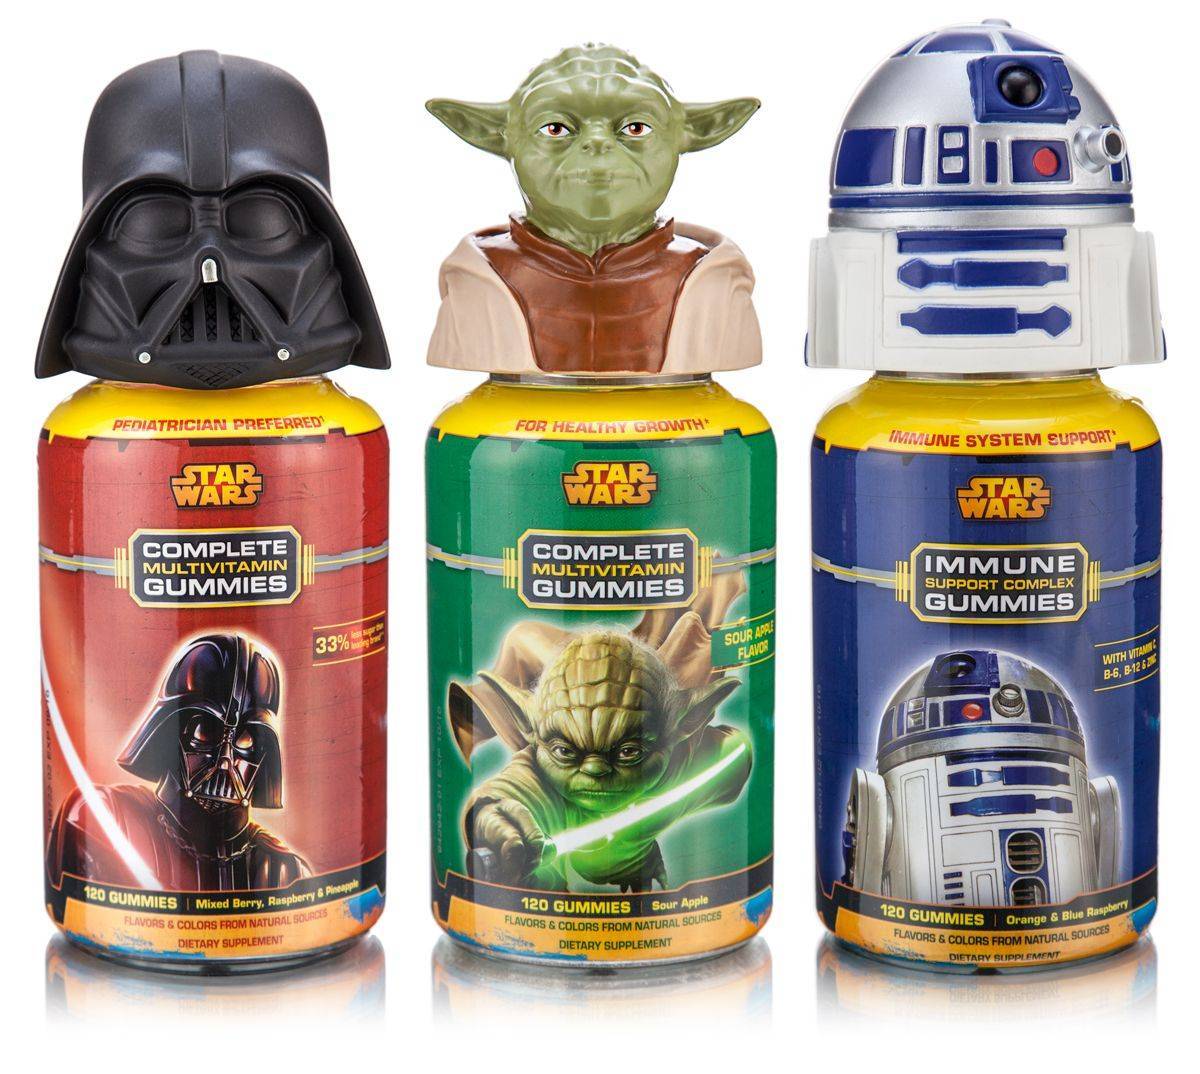 Star Wars Complete Multivitamin Gummies